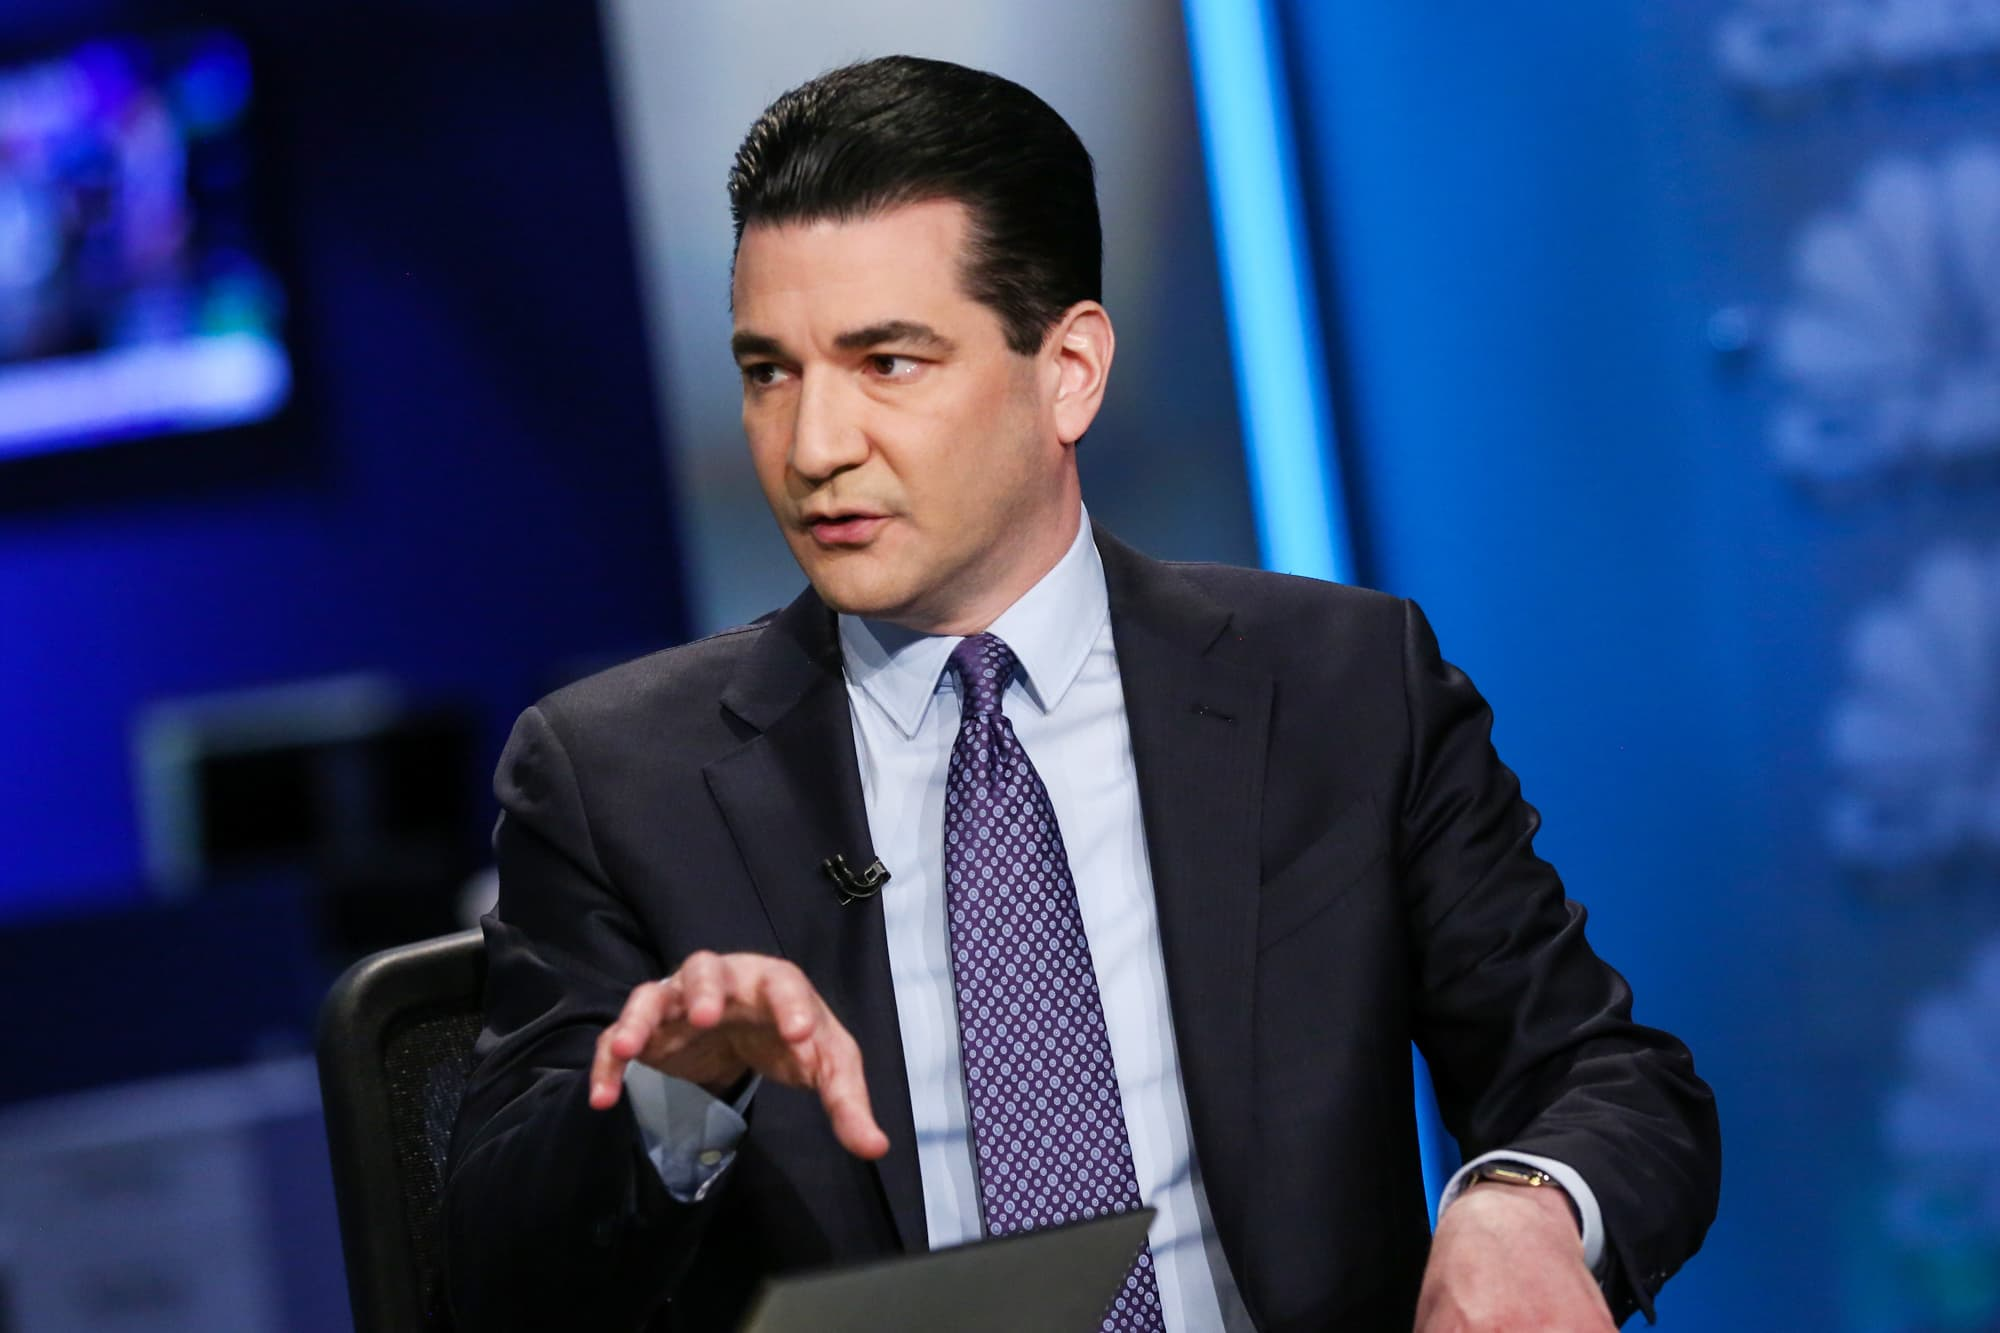 Dr. Scott Gottlieb says Las Vegas casinos are high risk